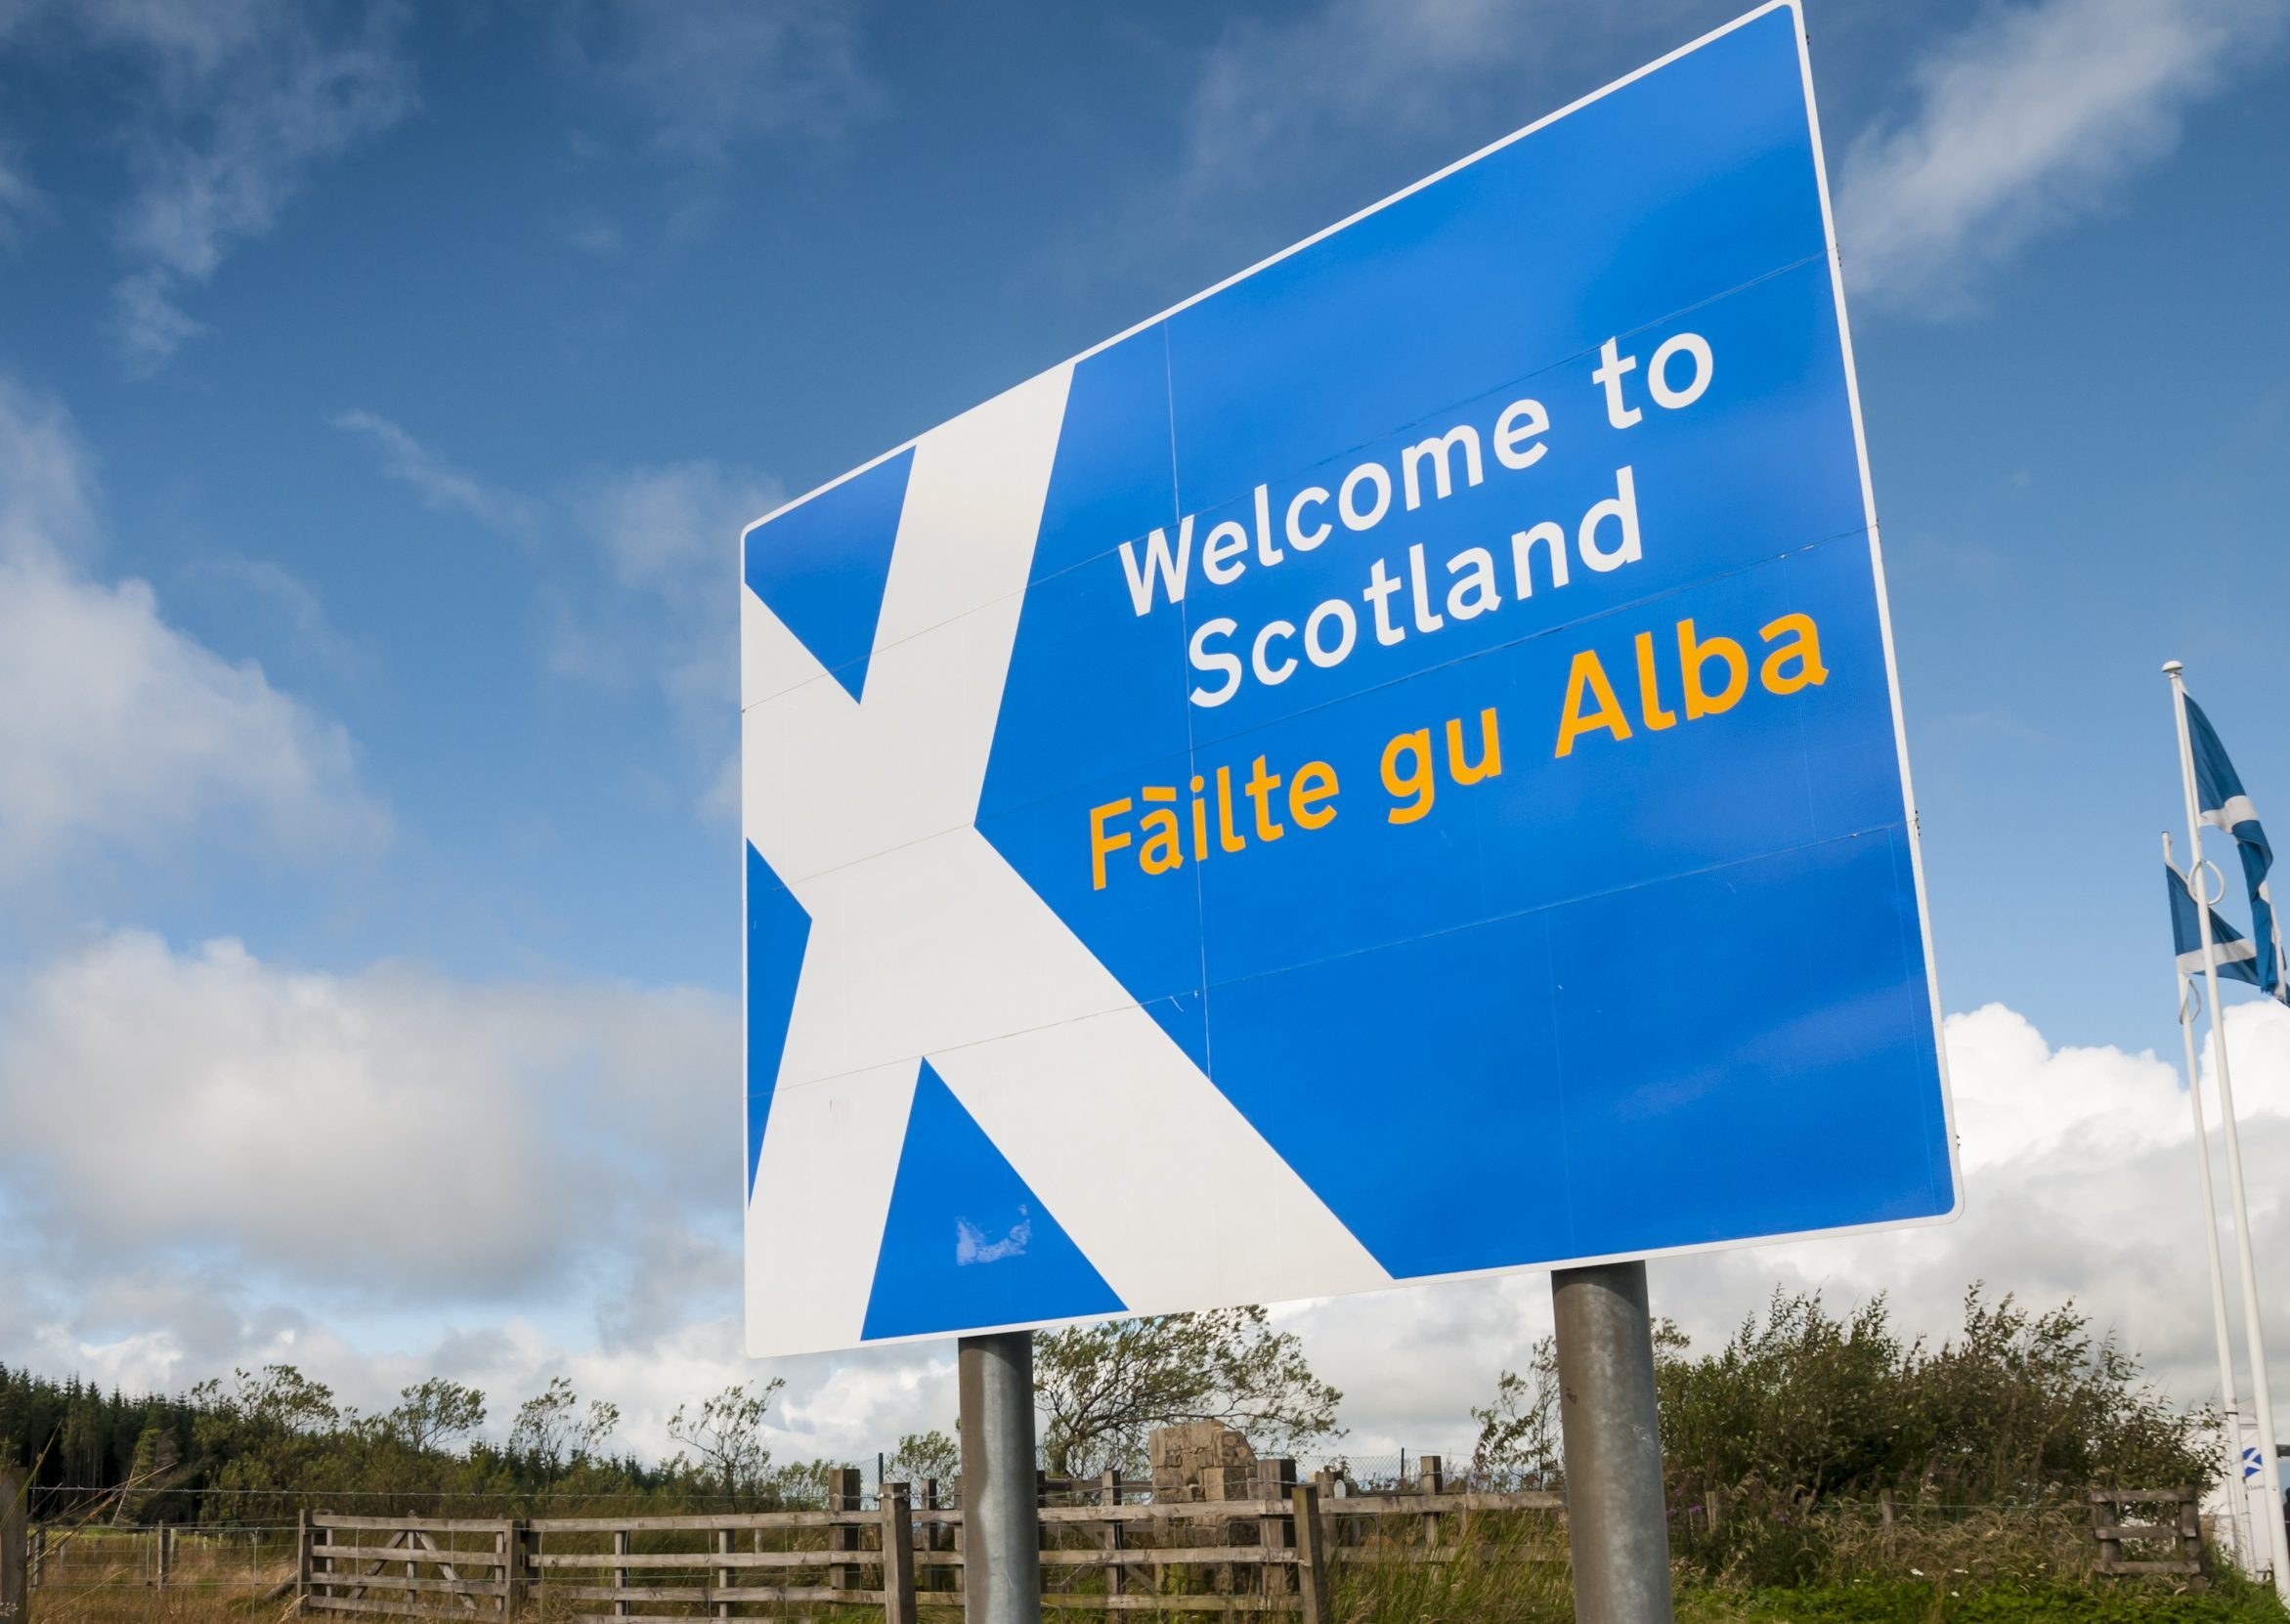 Our correspondent says the England/Scotland border could be where the EU starts and ends.